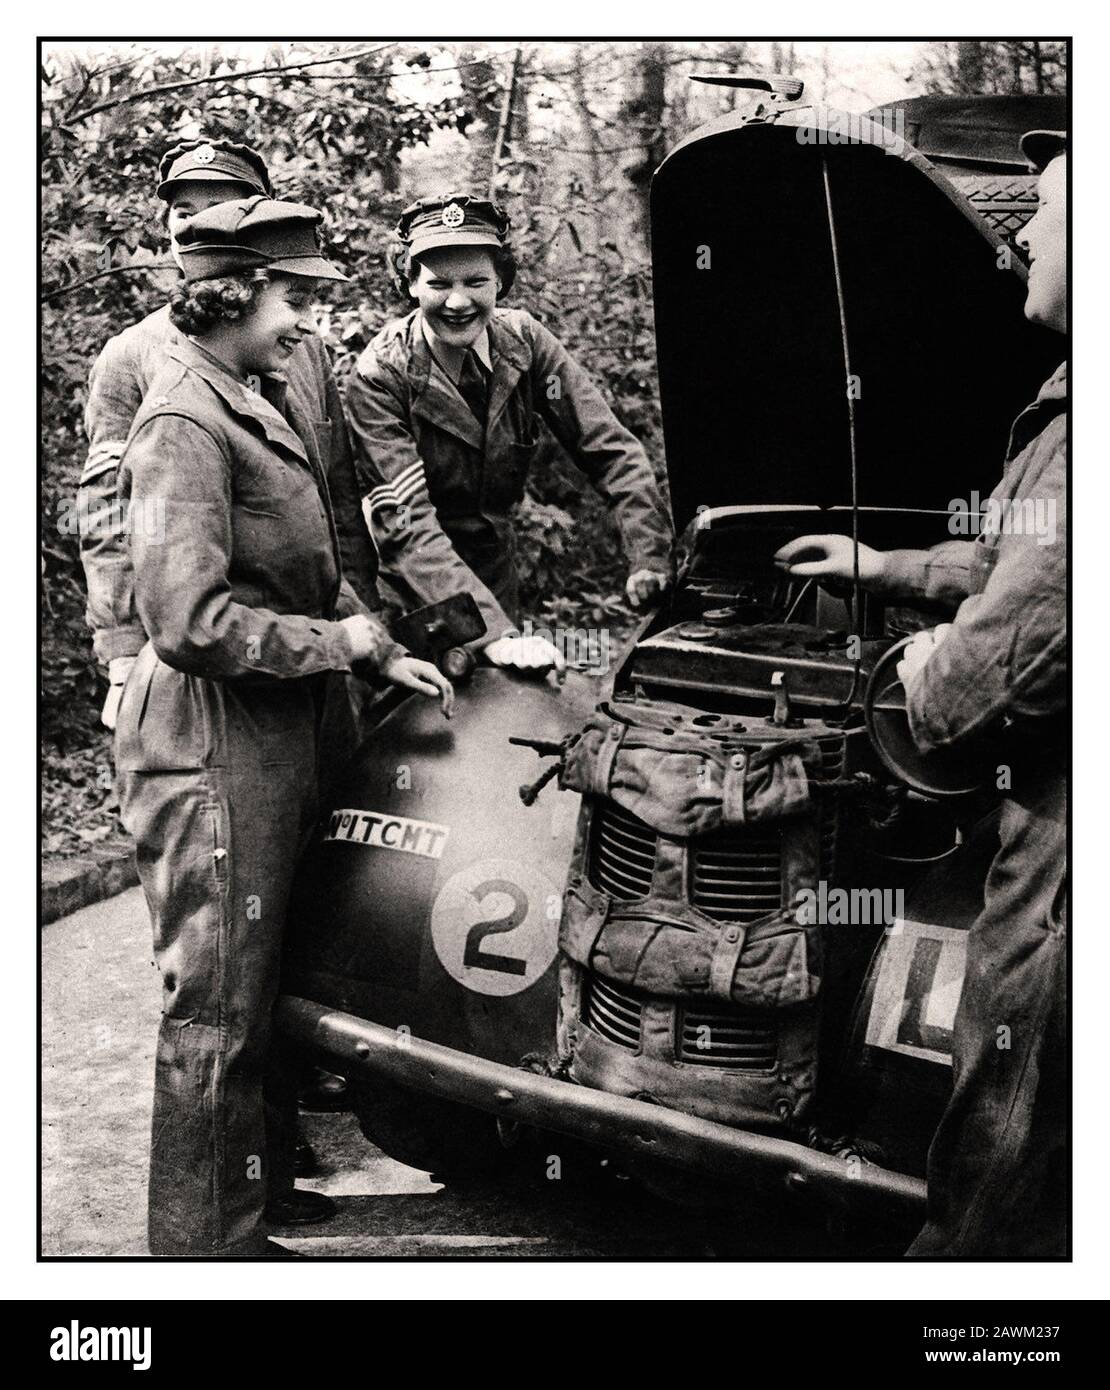 Princess Elizabeth ATS 1940's World War II Car Mechanic. HRH Princess Elizabeth (future Queen Elizabeth II) in her uniform of the ATS The Auxiliary Territorial Service a women's army auxiliary branch, with other smiling ATS service members working on and servicing a British Army military vehicle. Stock Photo